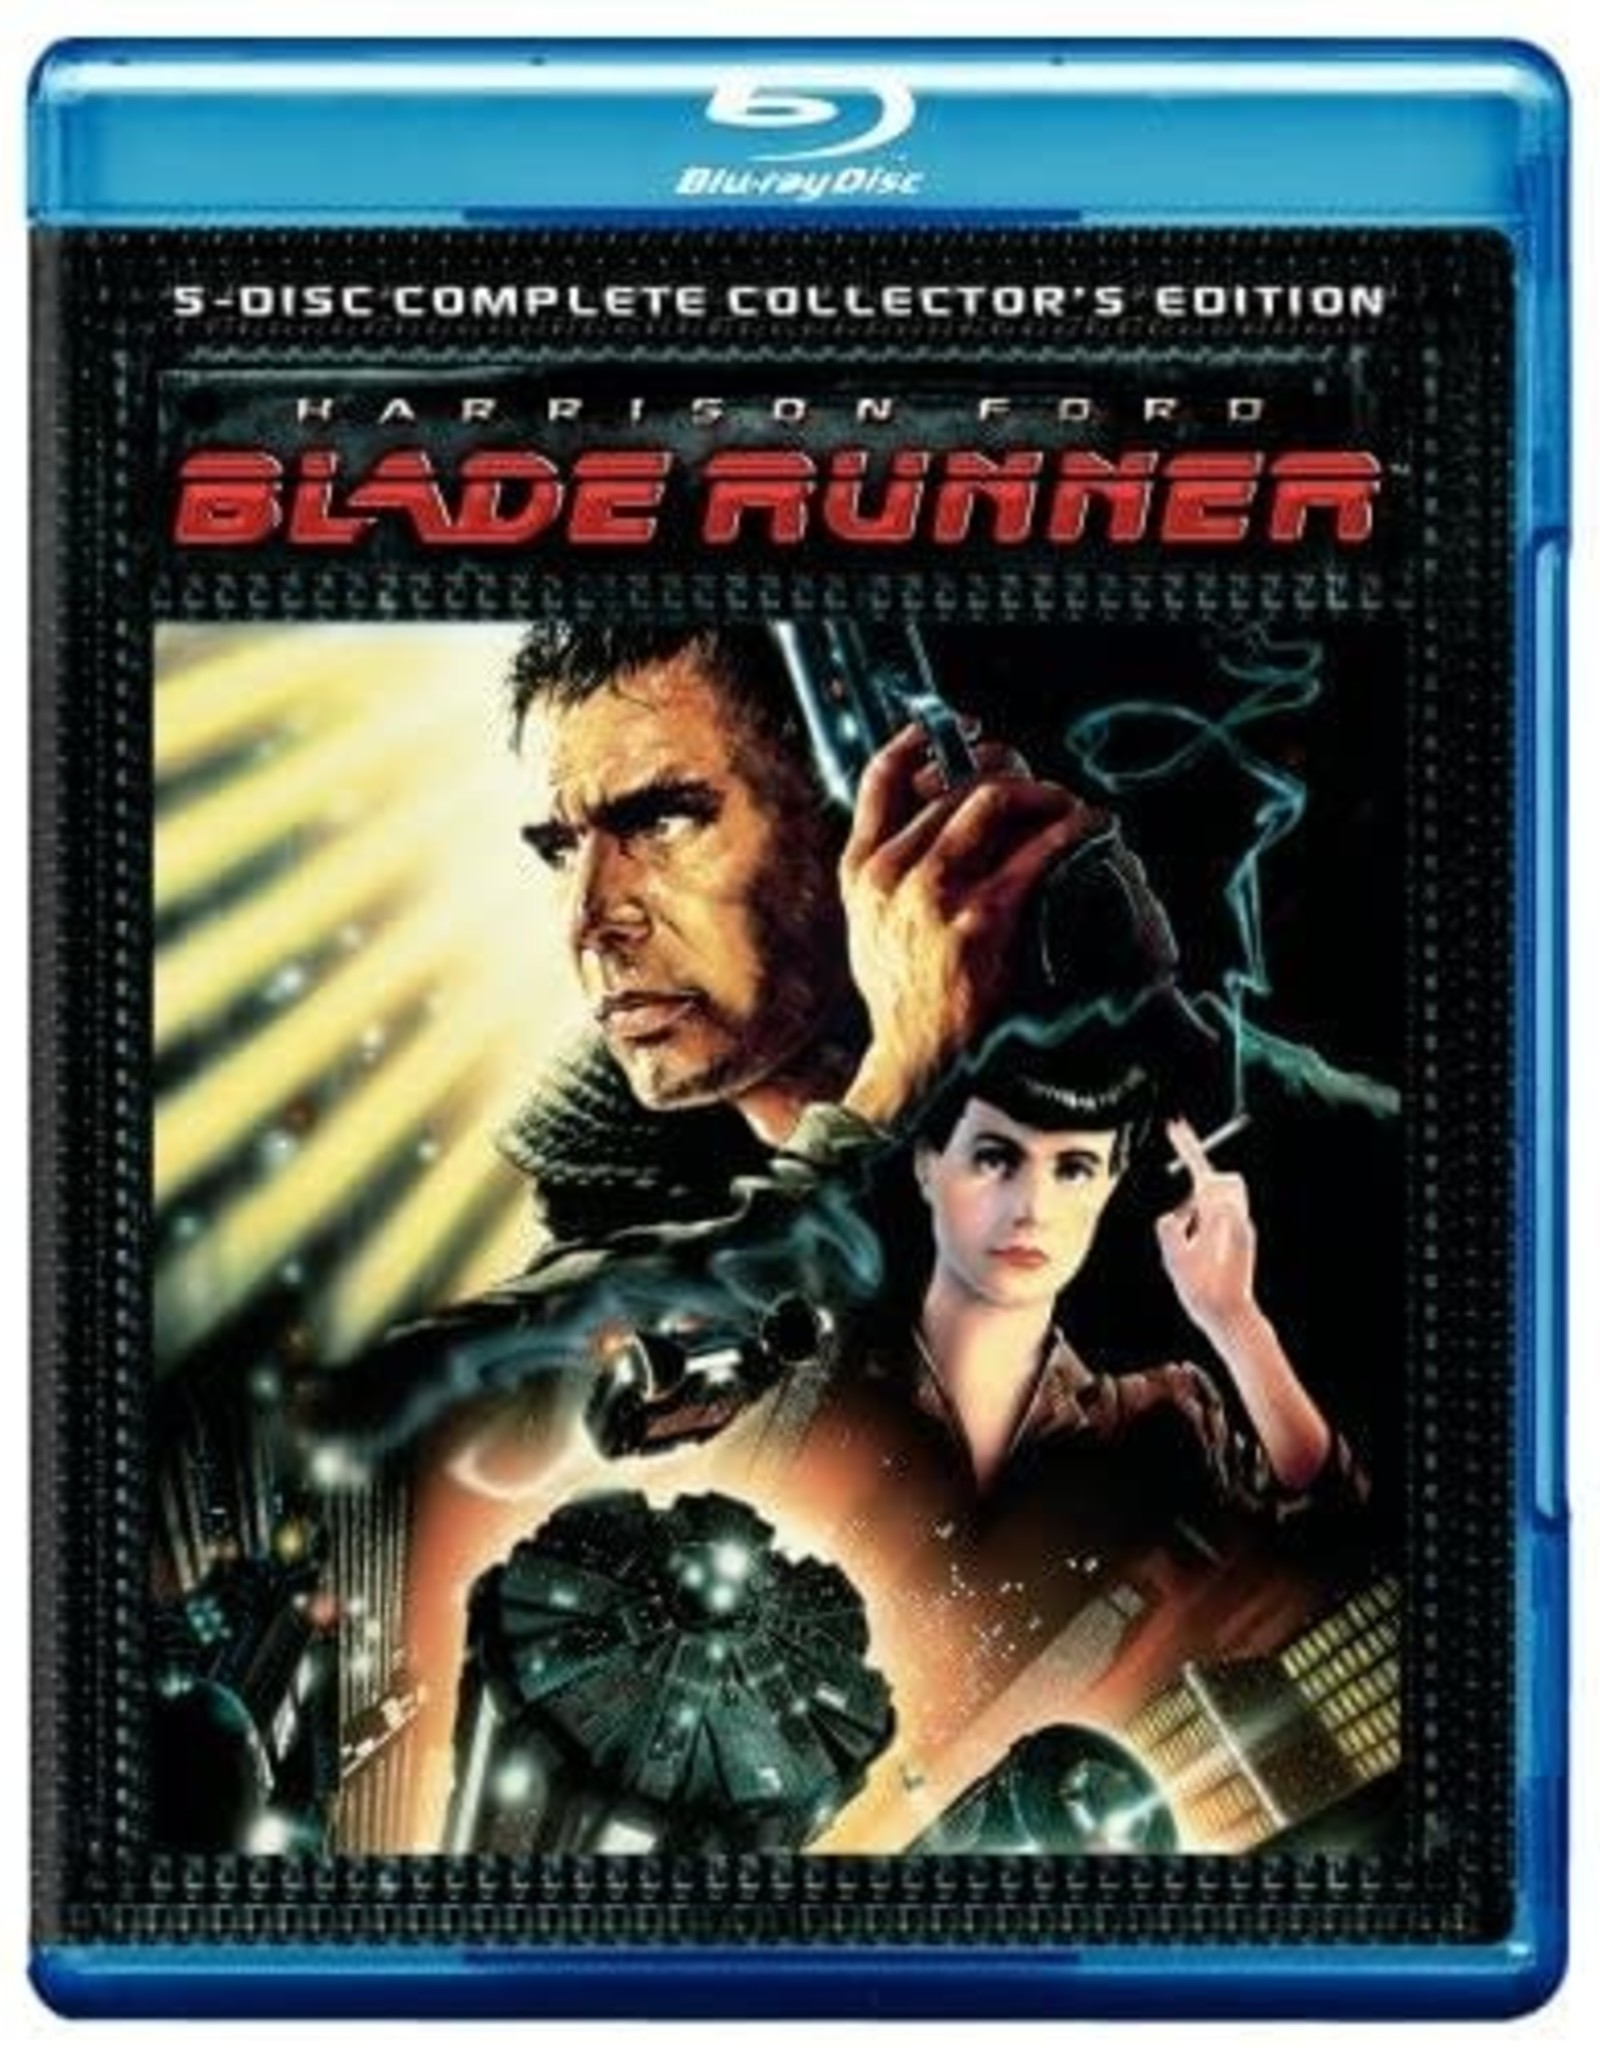 Cult and Cool Blade Runner 5-Disc Complete Collector's Edition (Brand New)